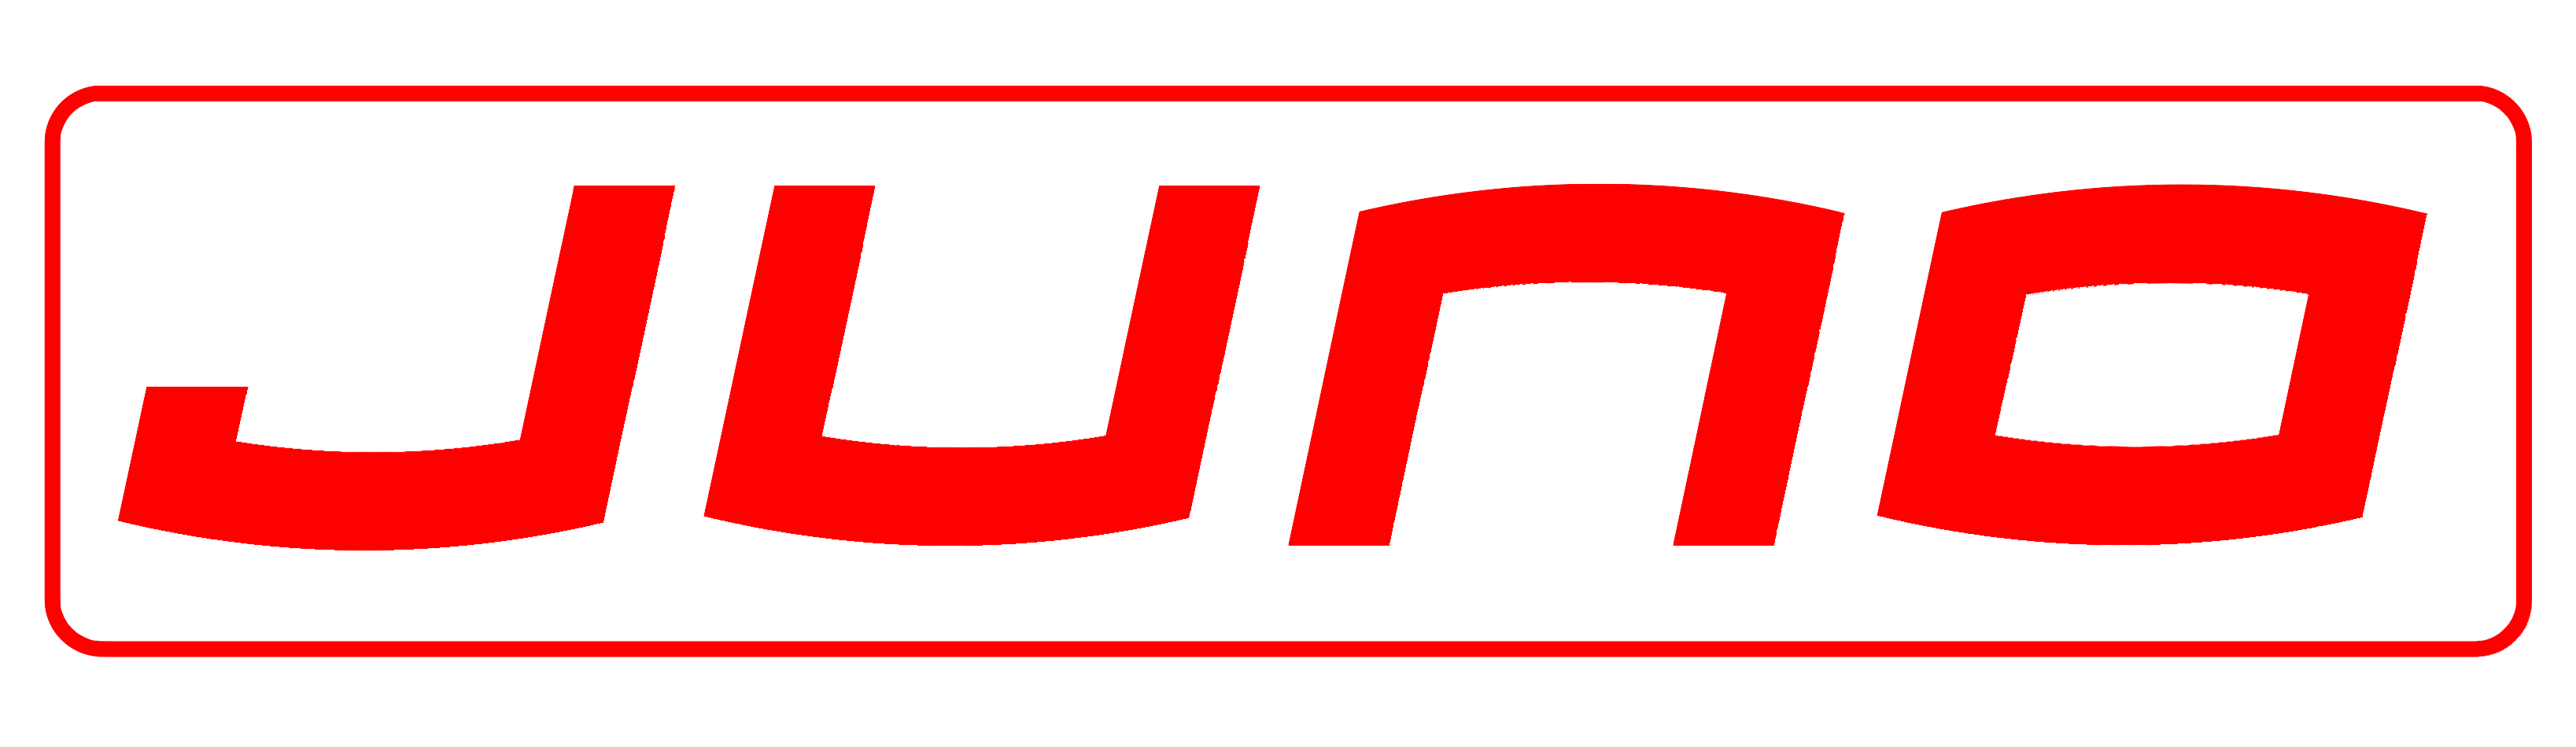 logo_juno+sito_transparent_red+black